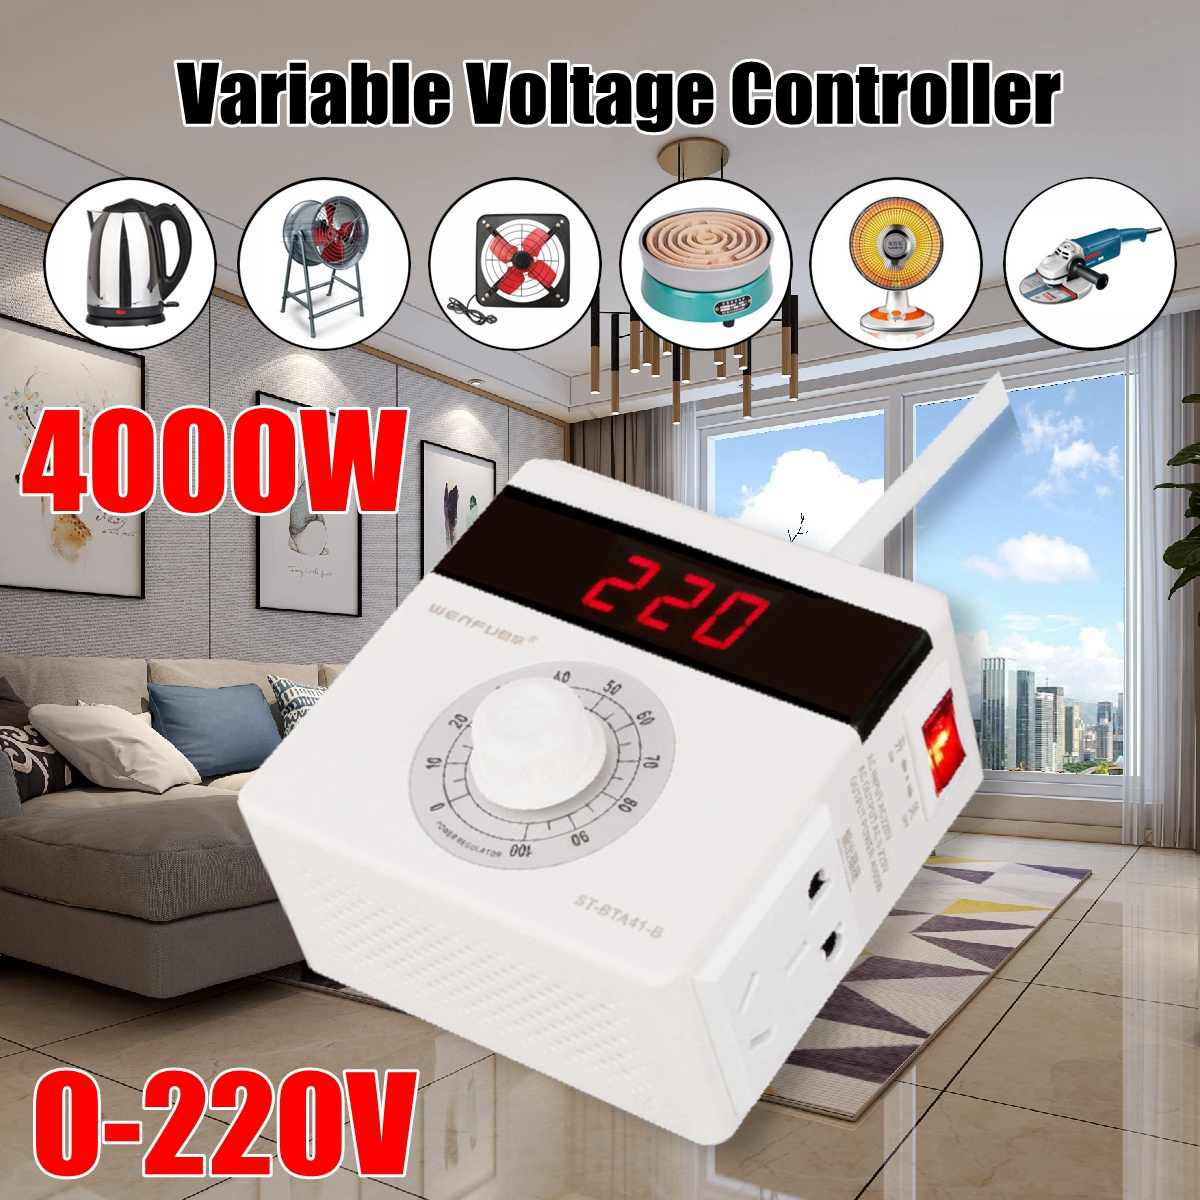 AC <font><b>220V</b></font> 4000W Variable <font><b>Voltage</b></font> <font><b>Regulator</b></font> Temperature Controller Motor FAN Speed Electric Heating Tube Thermostat Speed Switch image